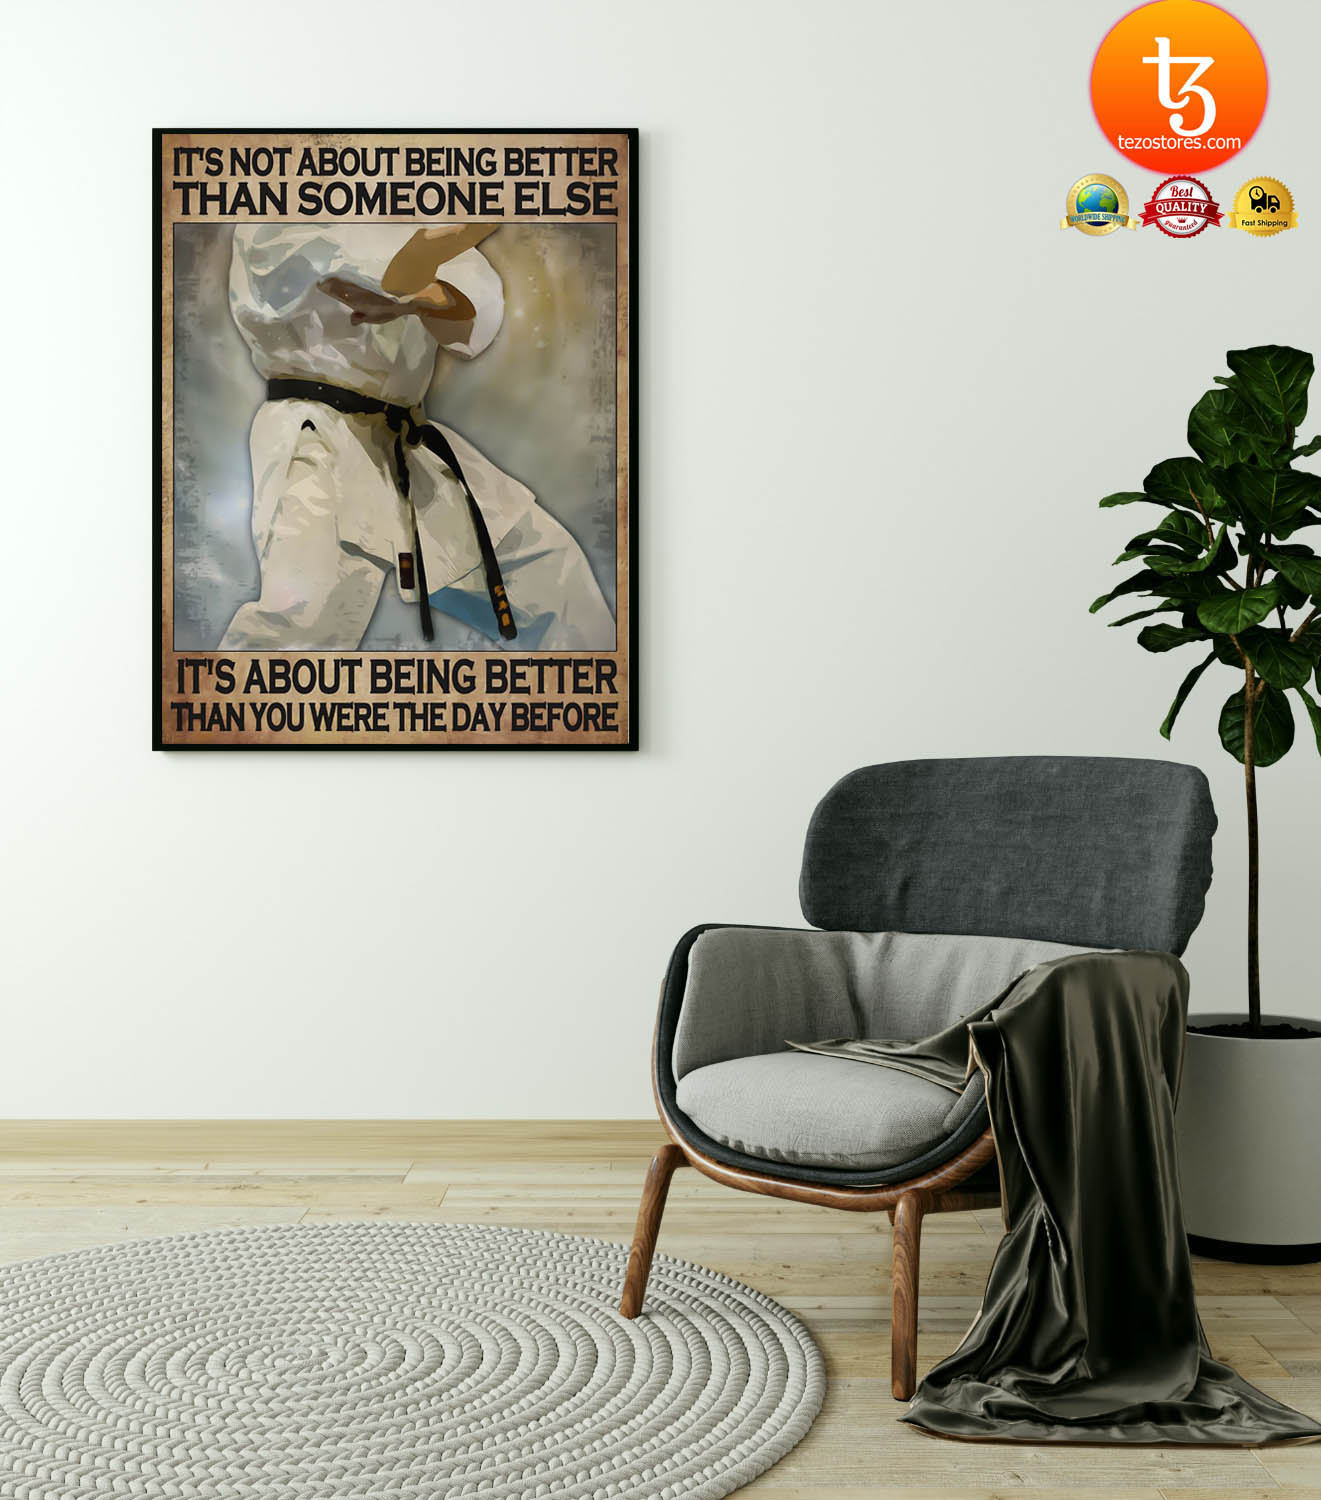 Osu Karate It's not about being better than someone else poster 1